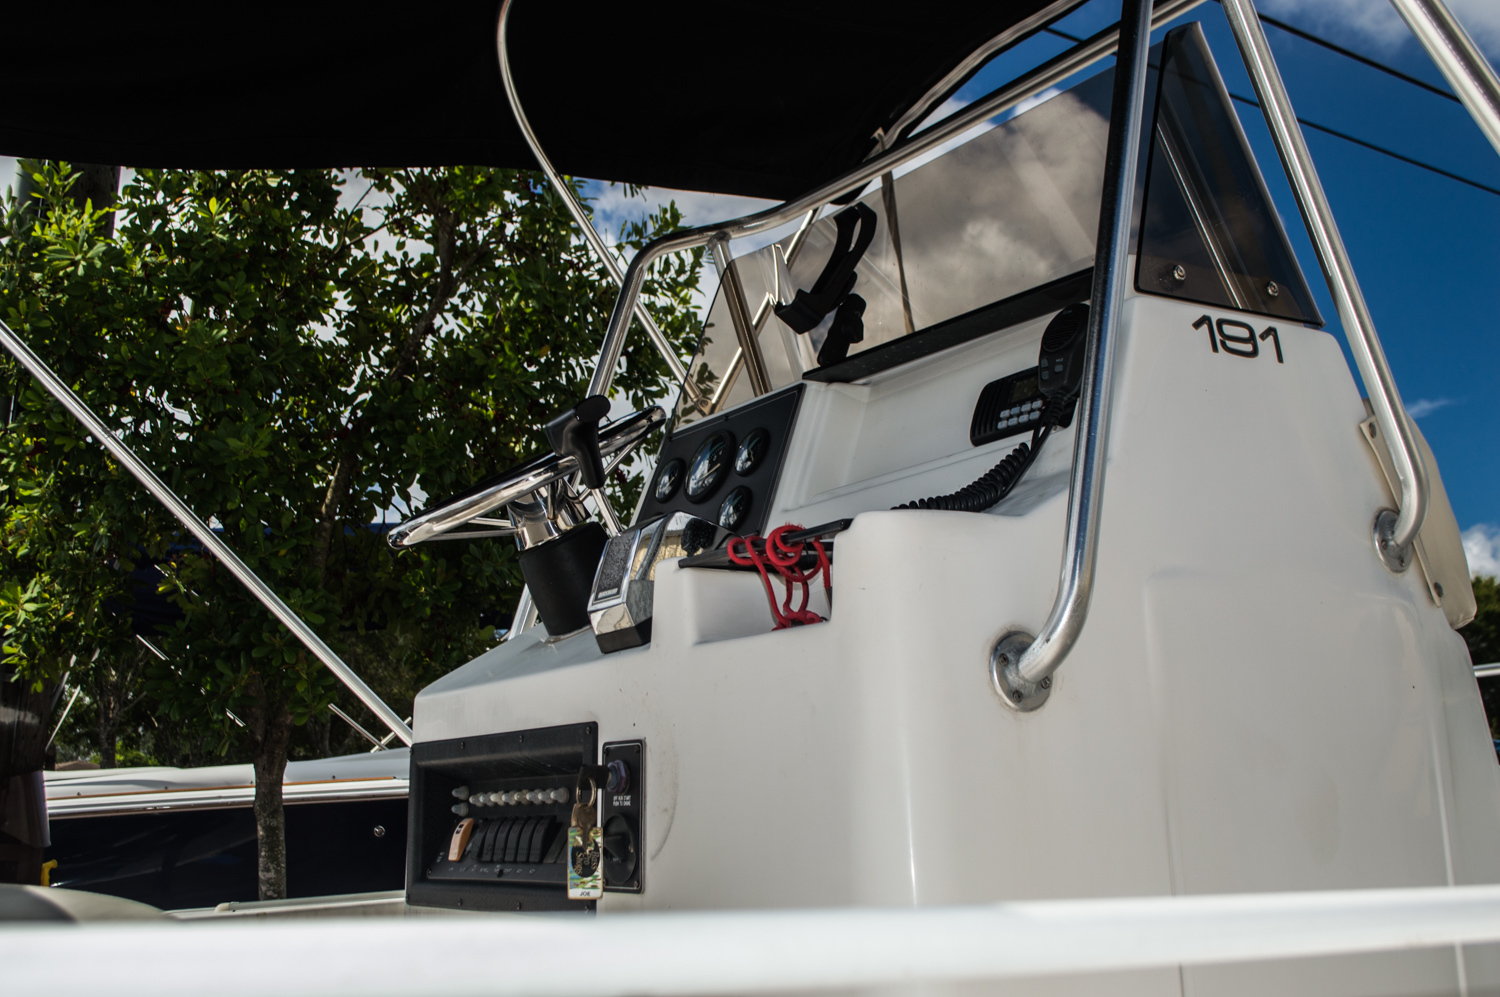 Thumbnail 3 for Used 2000 Mako 191 Center Console boat for sale in West Palm Beach, FL